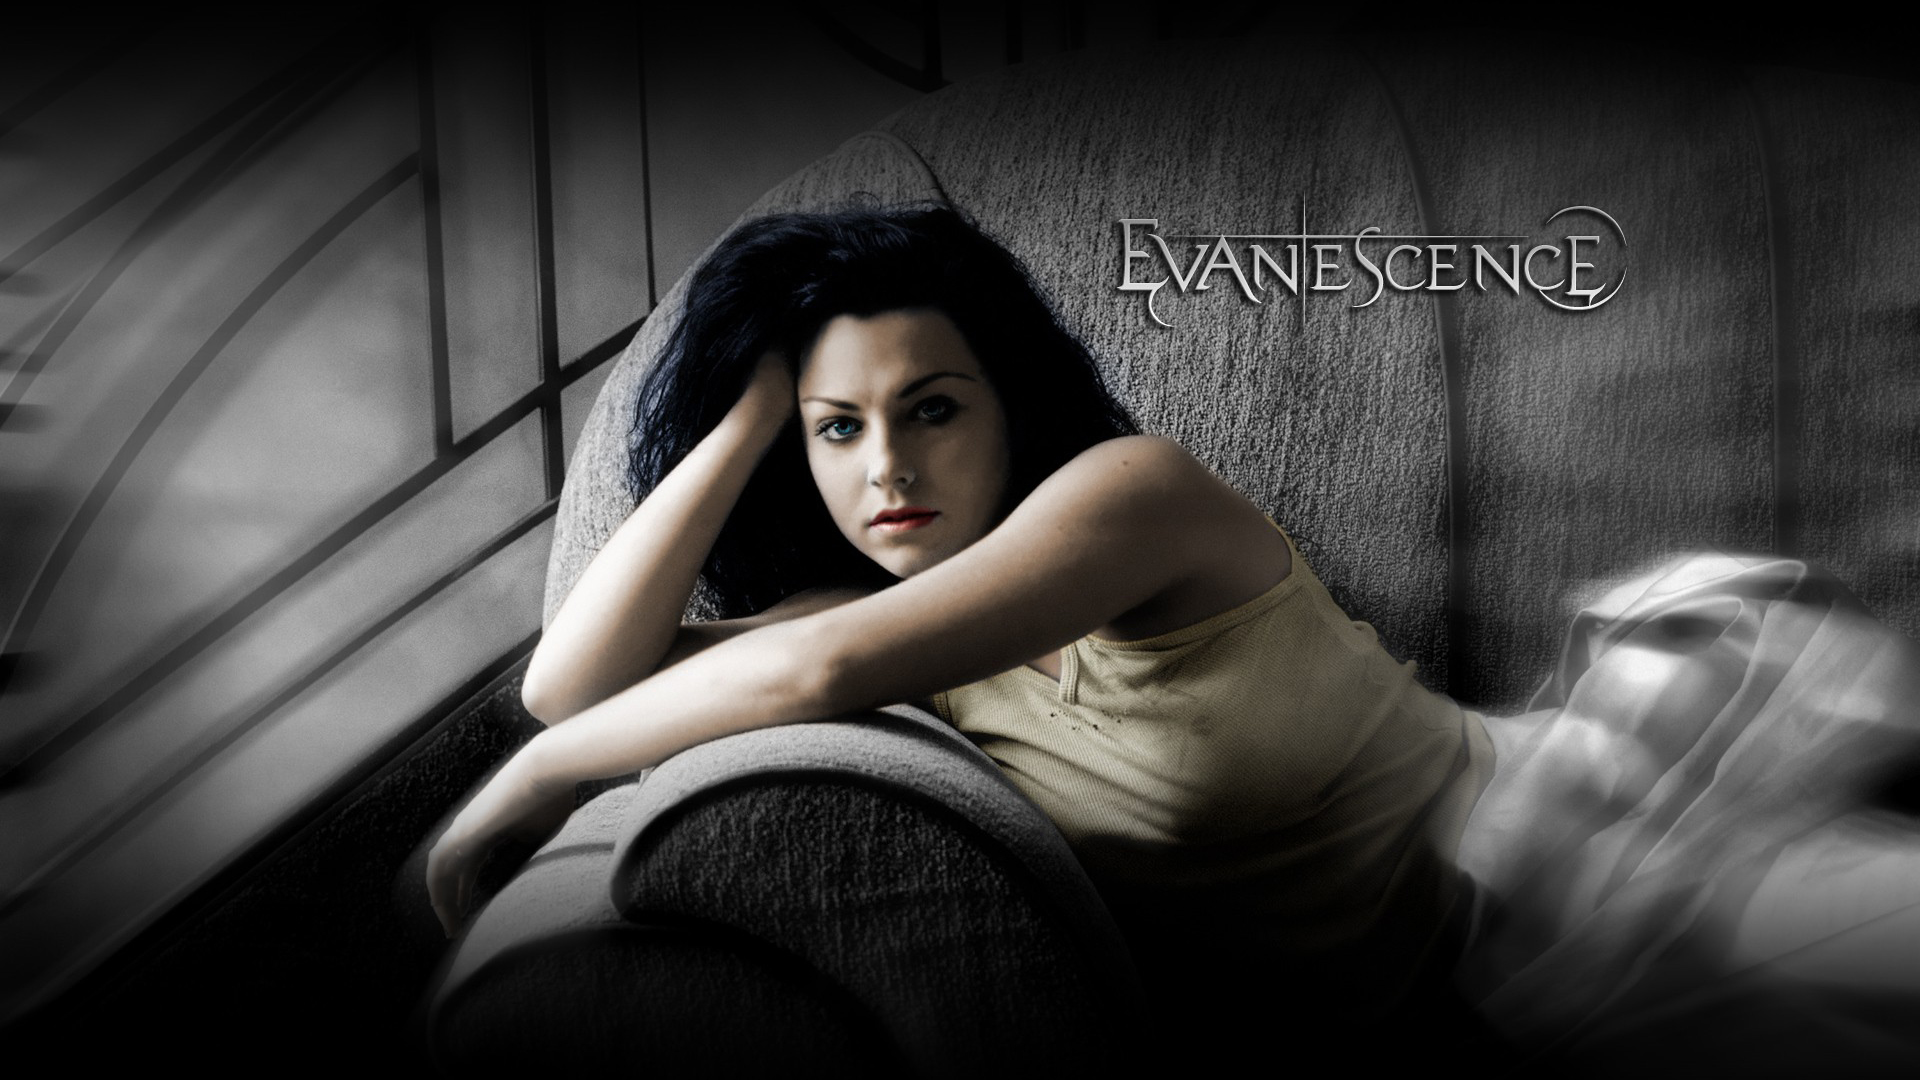 wallpapers evanescence amy lee full hd 1080p im225genes